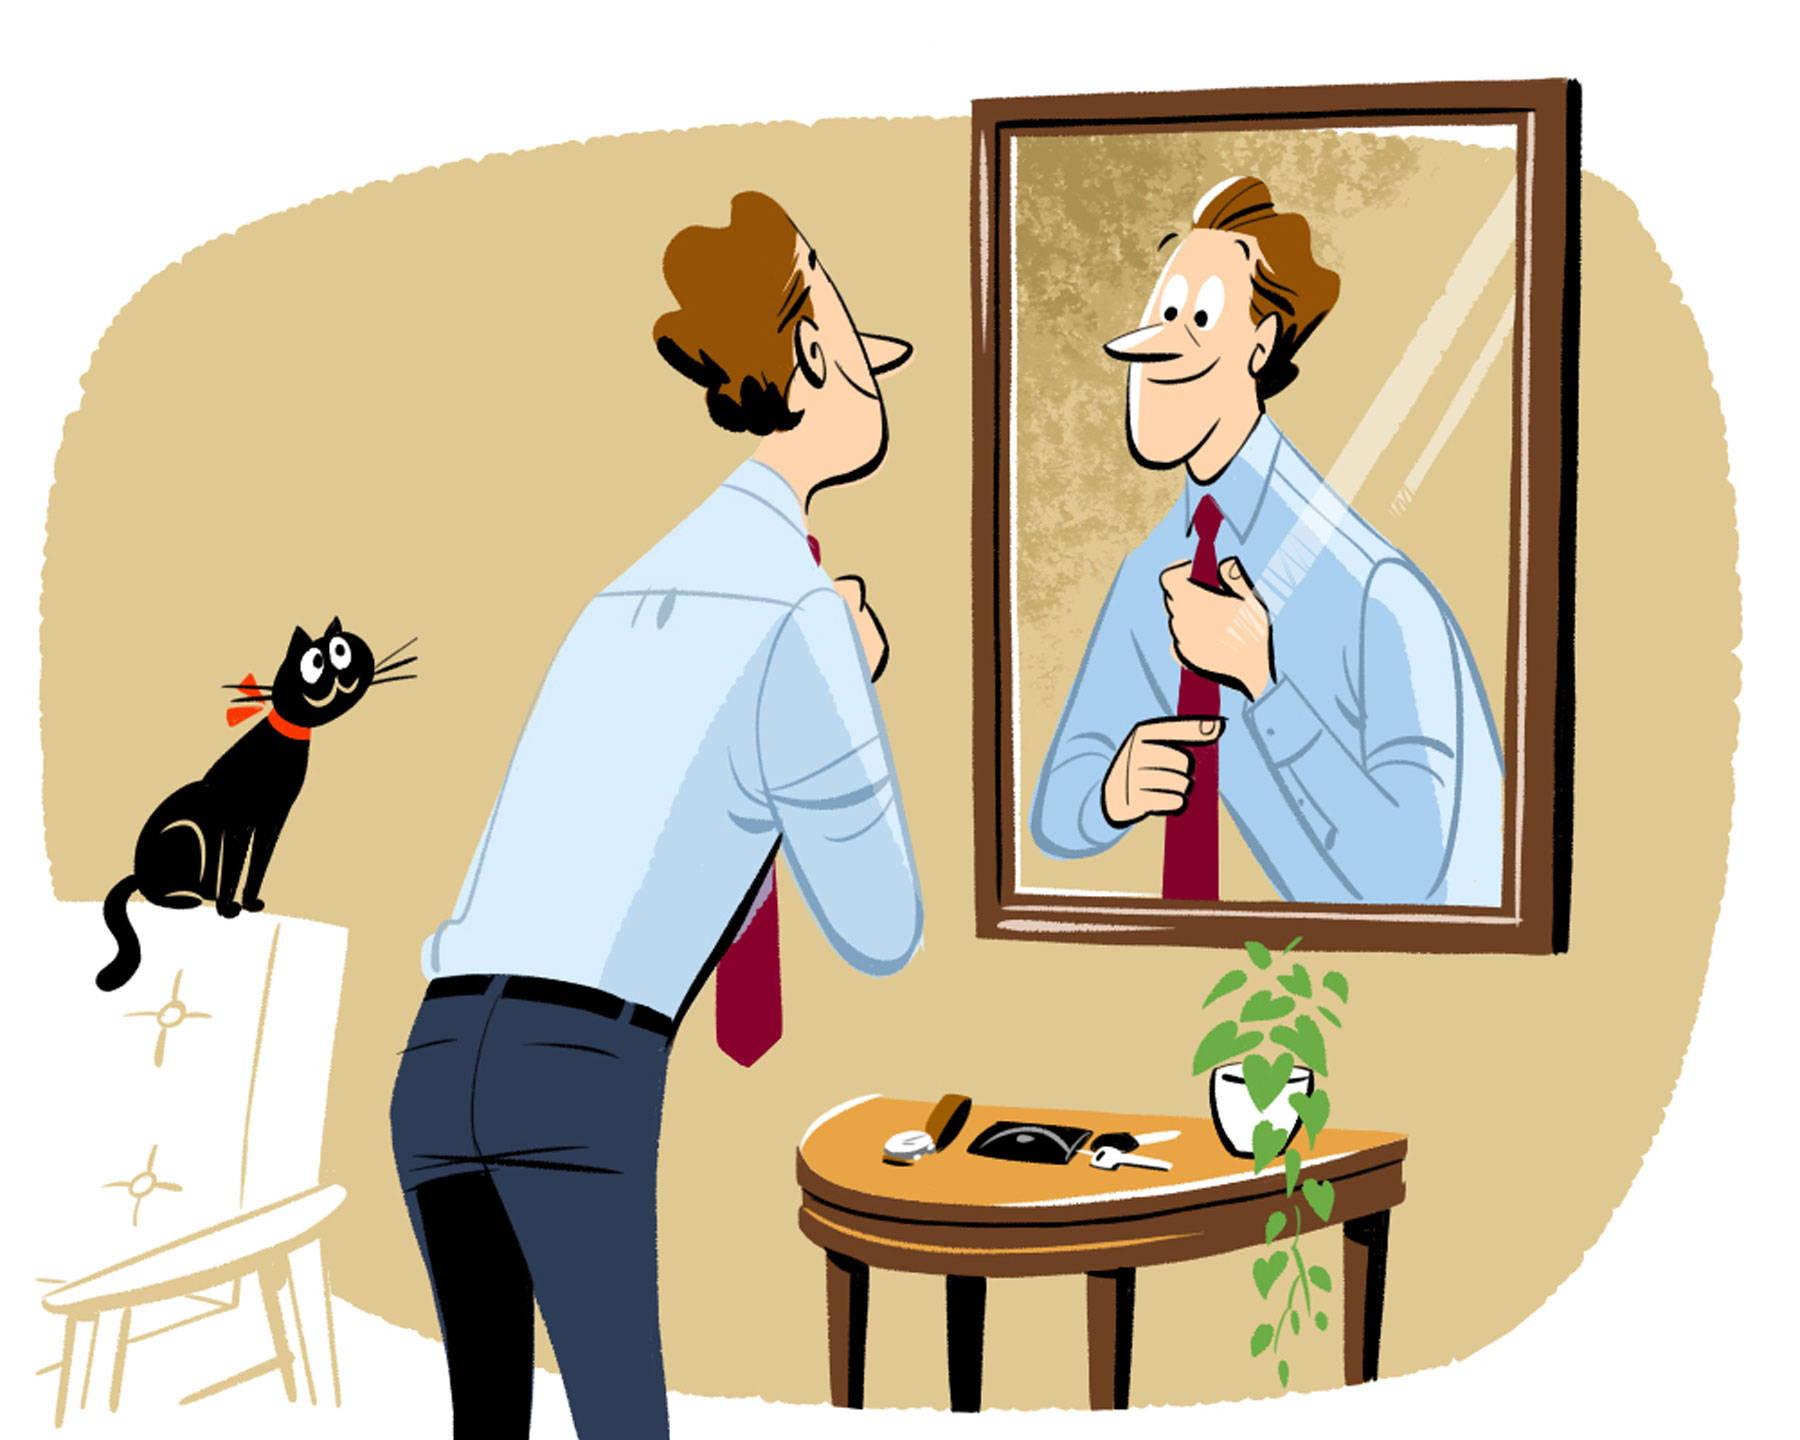 Illustration of man tying tie with cat